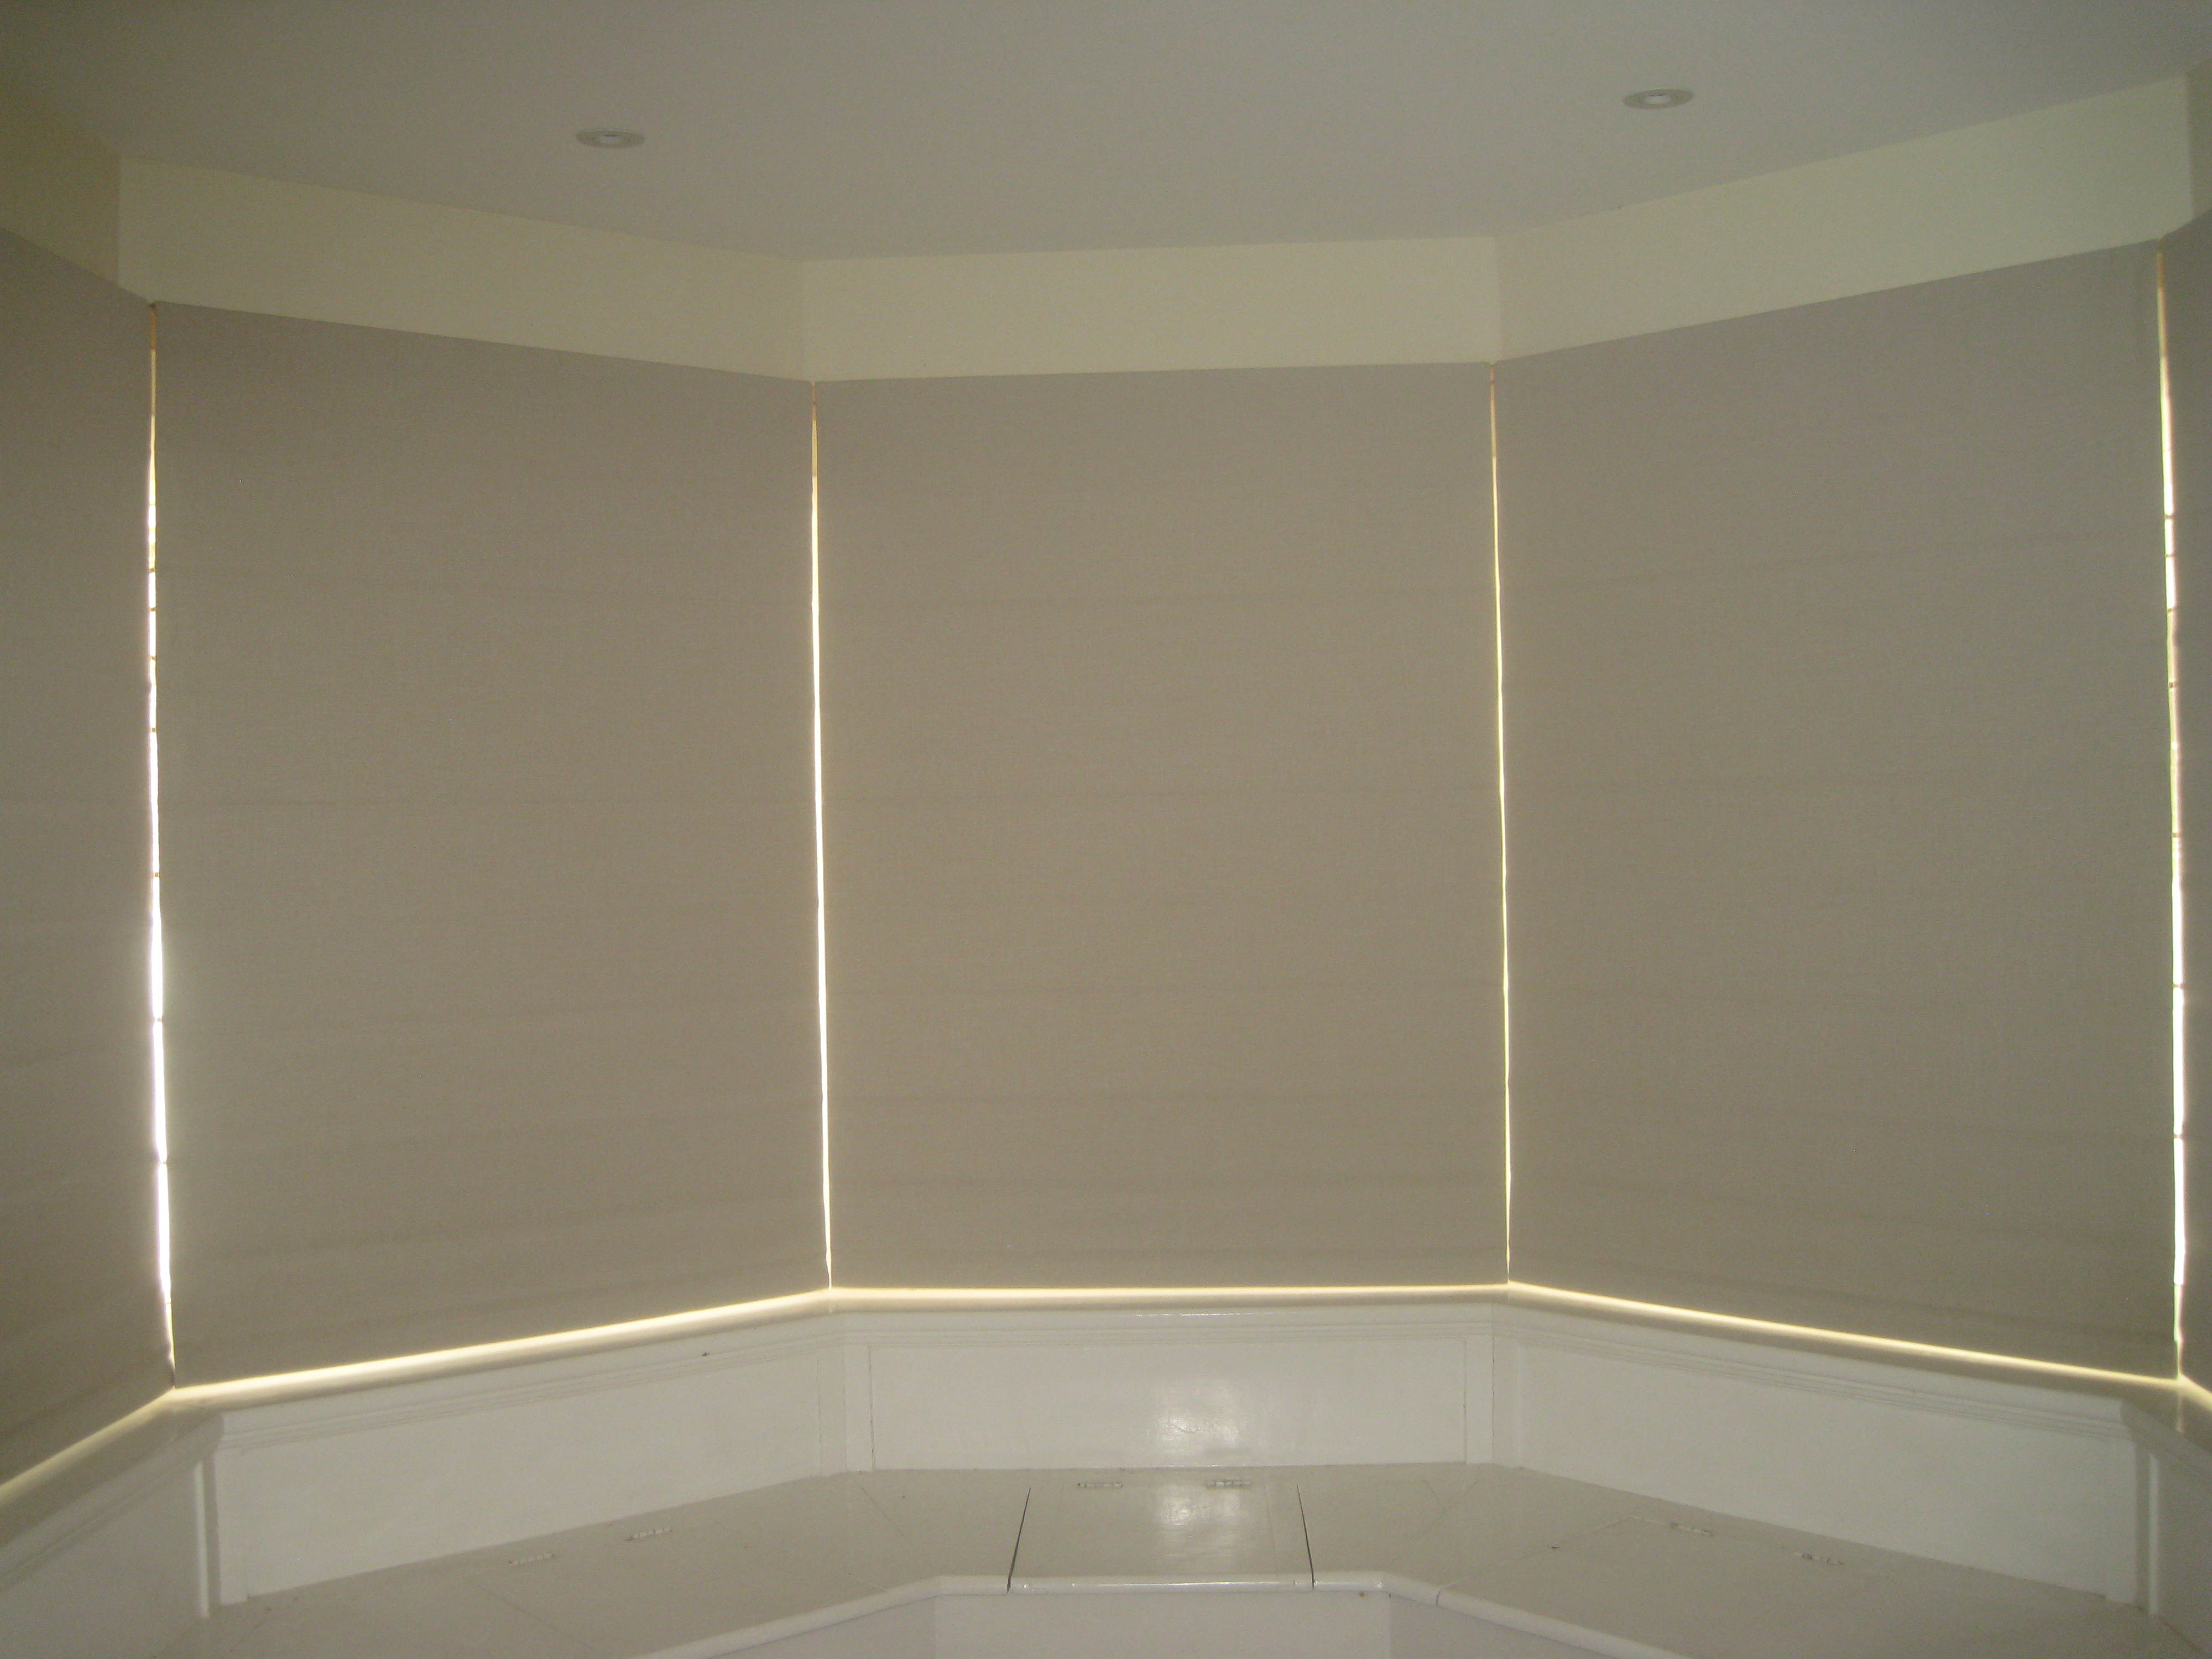 shower image shades for house window bathroom blinds wide of variety cheap contemporary awesome